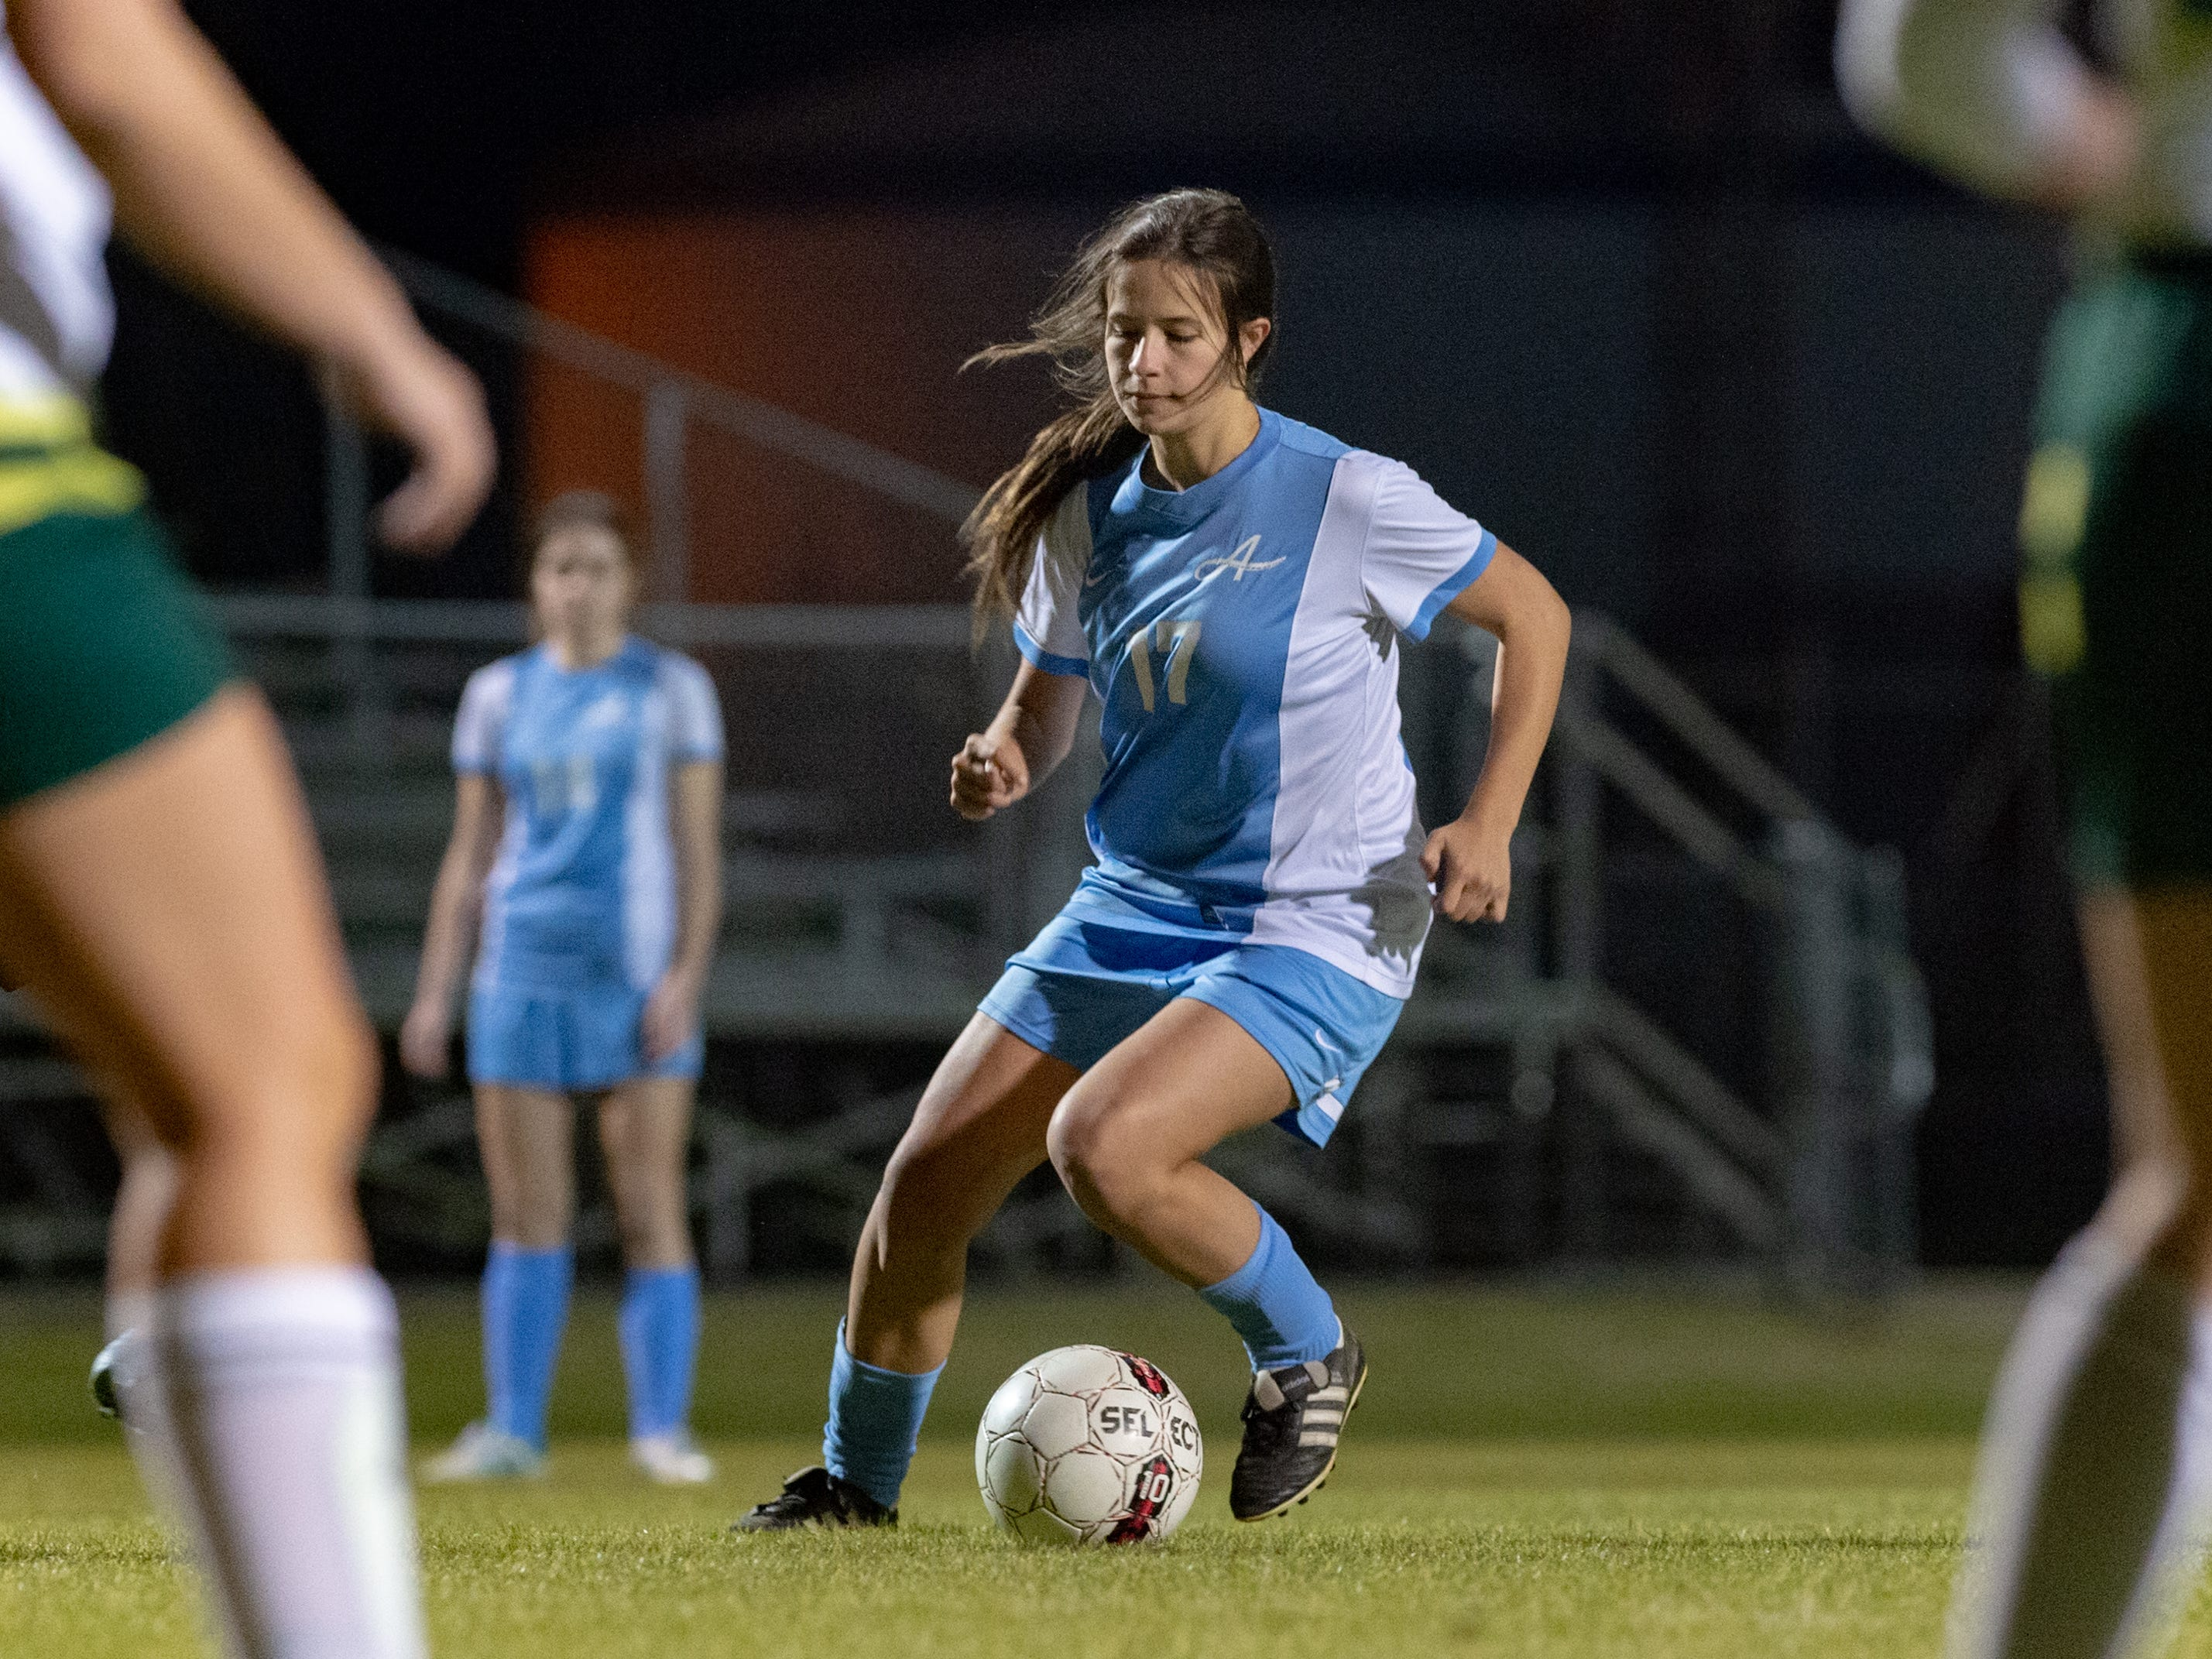 Anna-Kathryn Charboni moves the ball as the Ascension Blue Gators blank the Calvary Cavaliers 6-0. Thursday, Jan. 31, 2019.